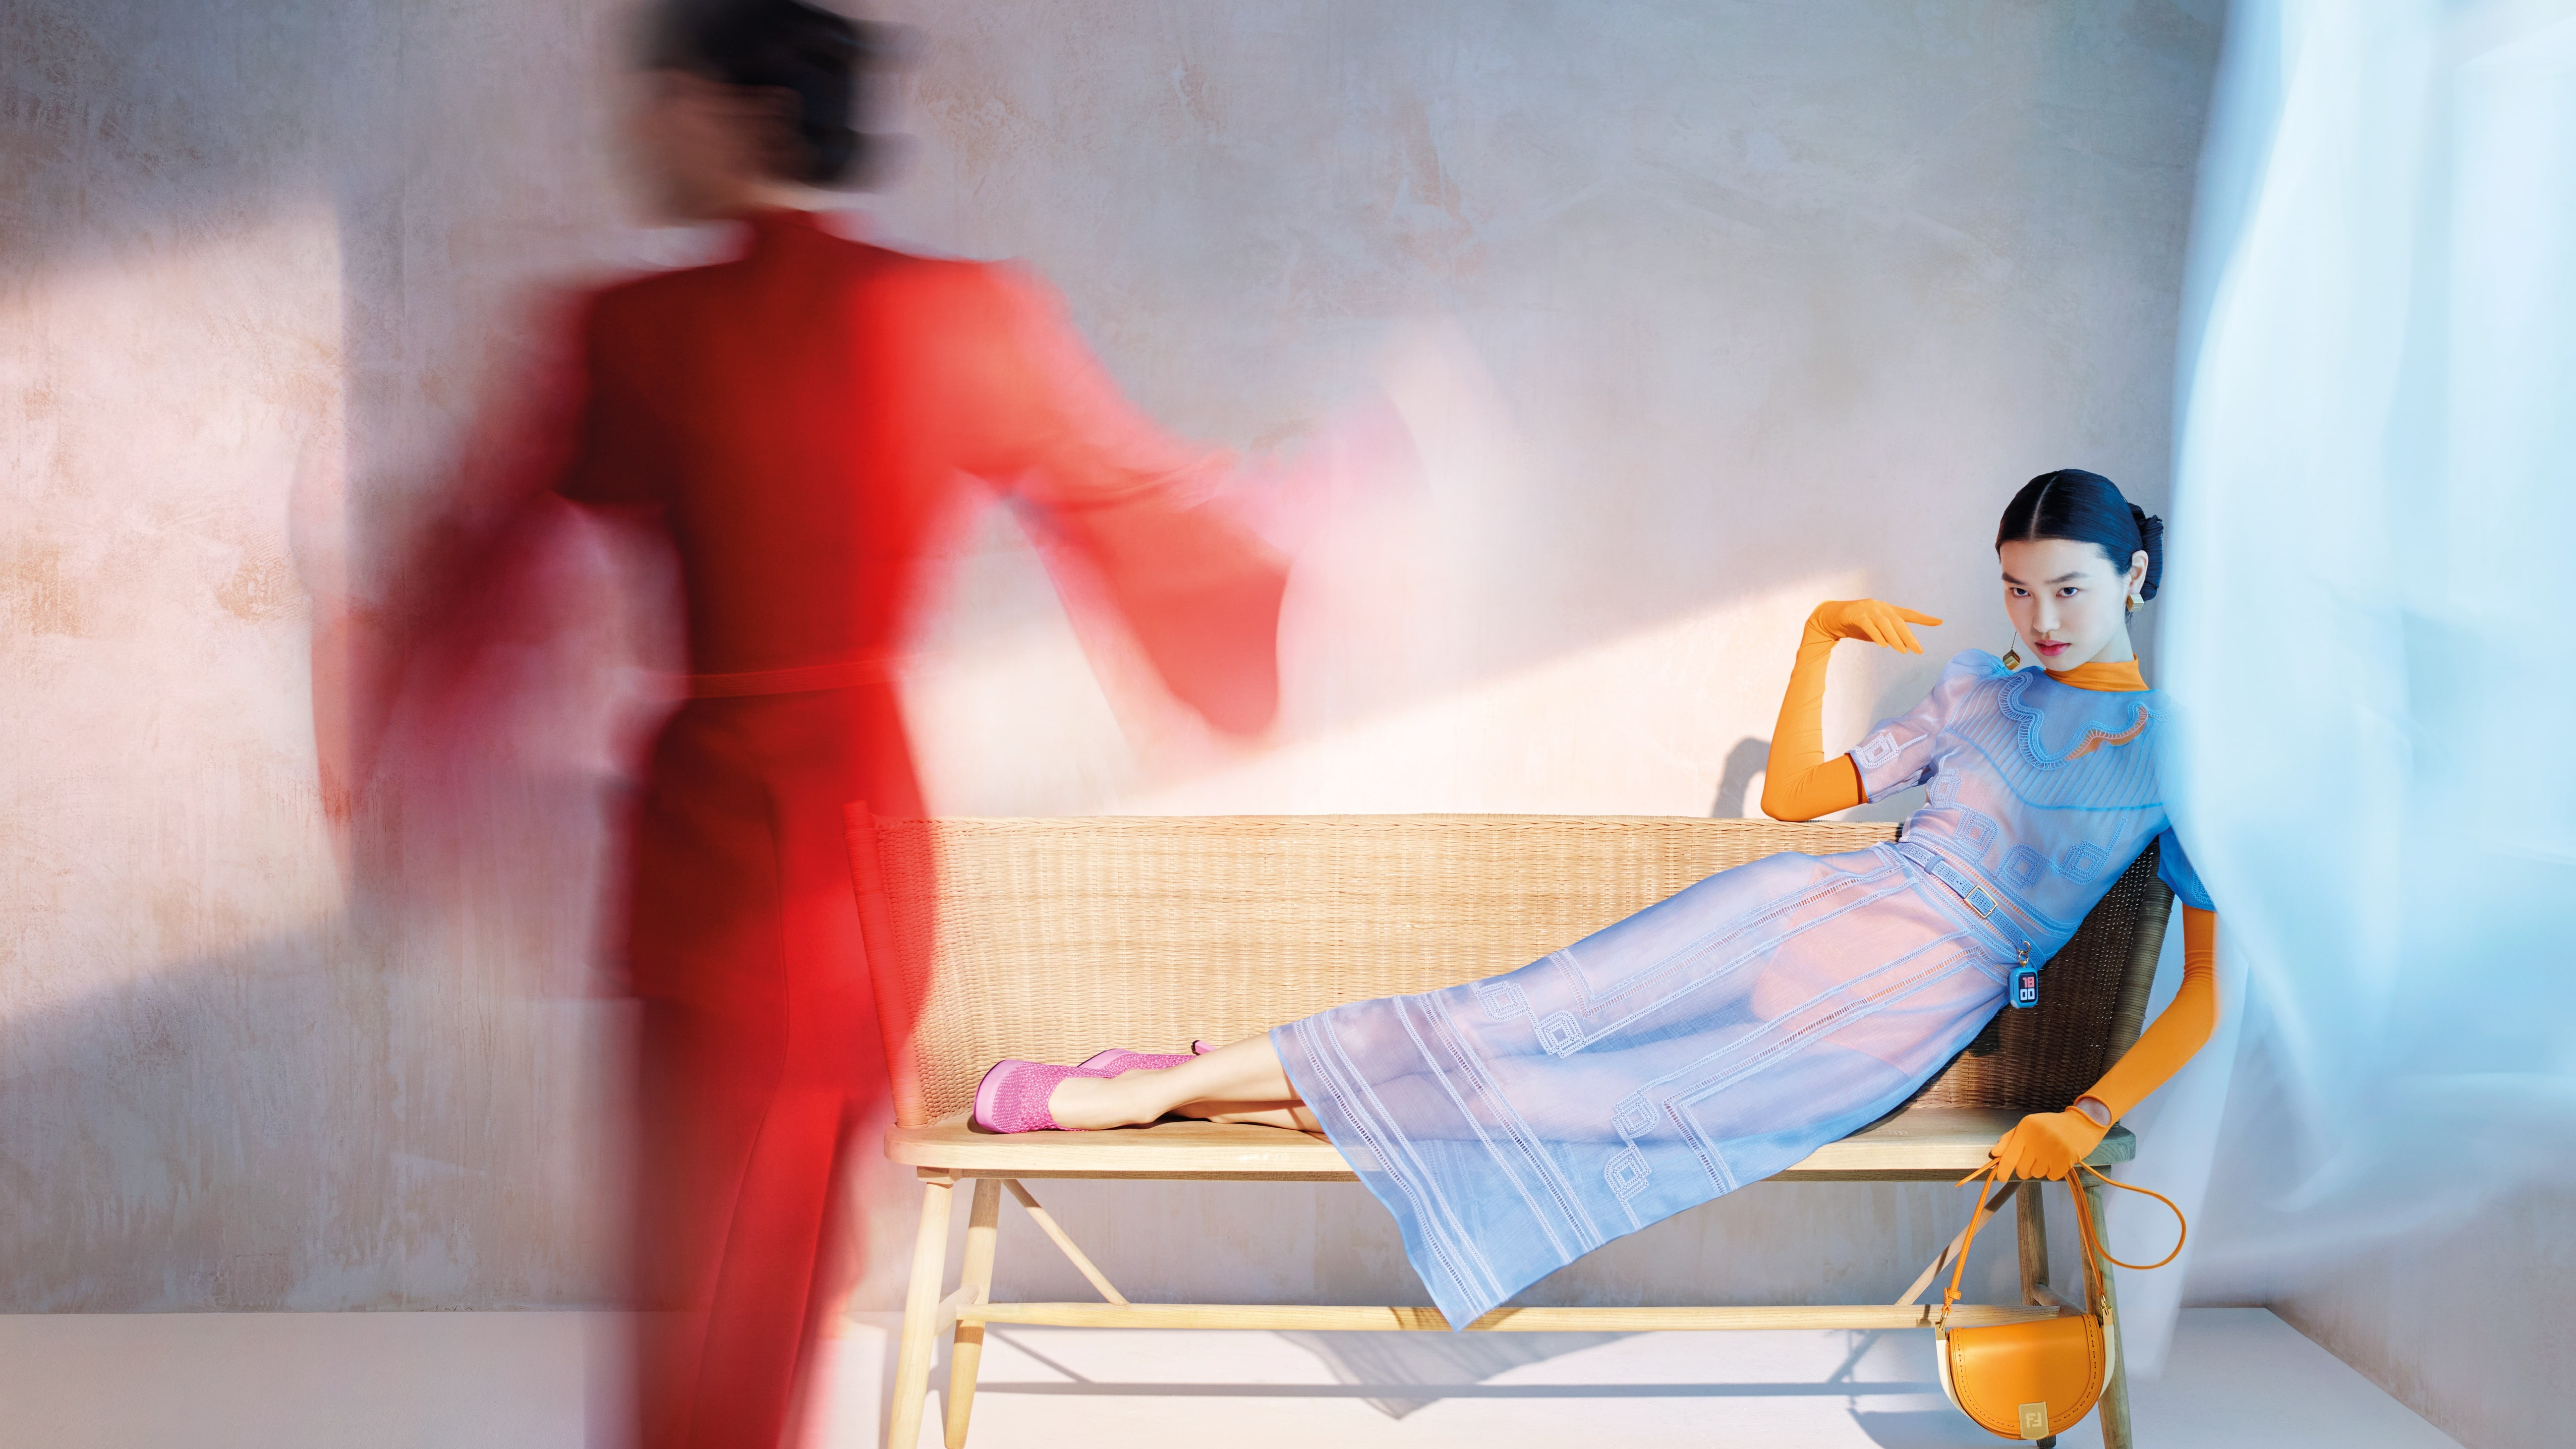 Fendi Spring/Summer 2021 Is An Ode To Time And Tradition - Grazia